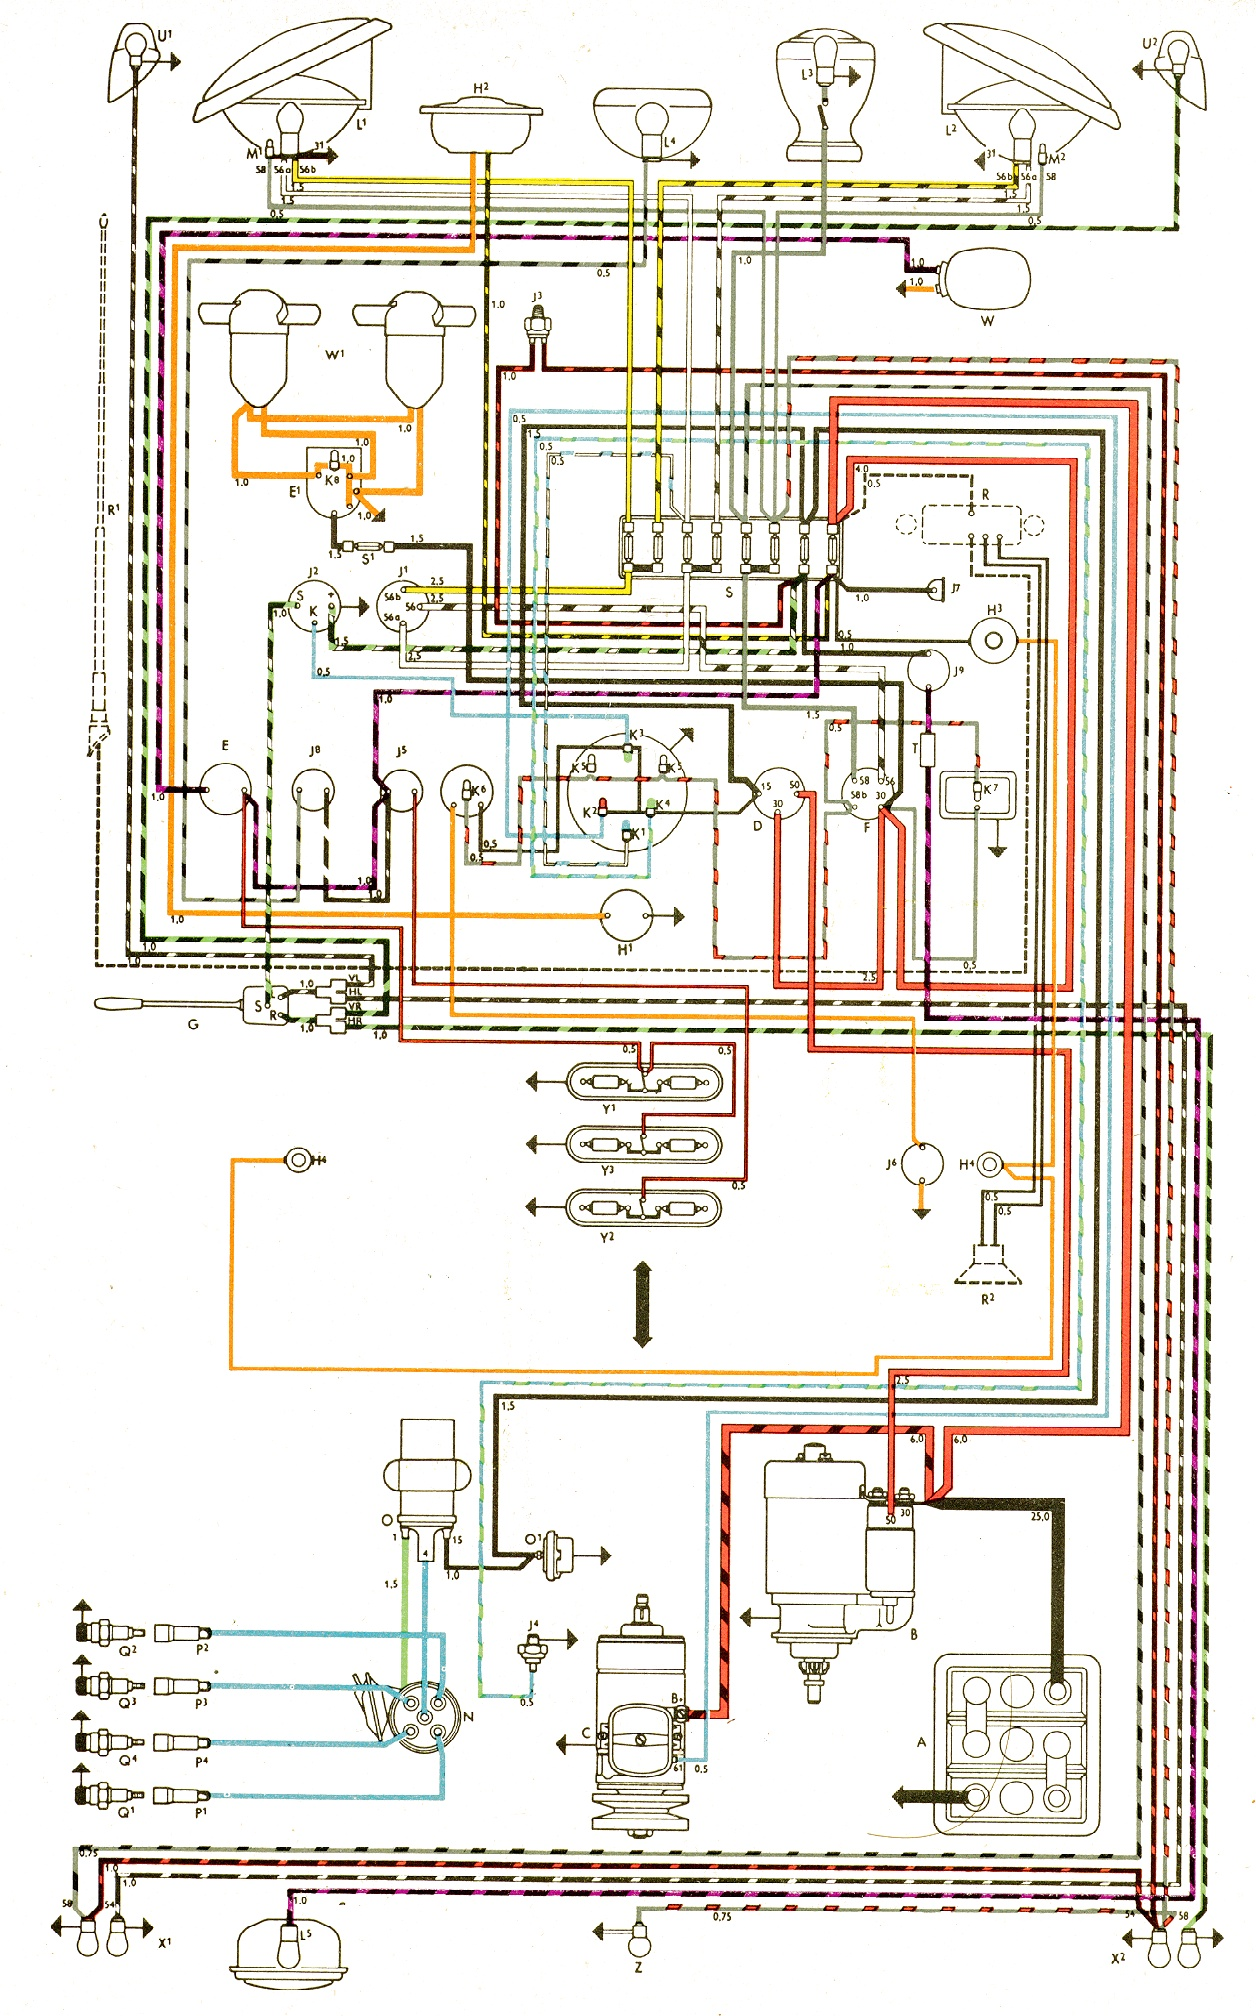 vw bus wiring harness read all wiring diagram 1971 VW Bus Specs